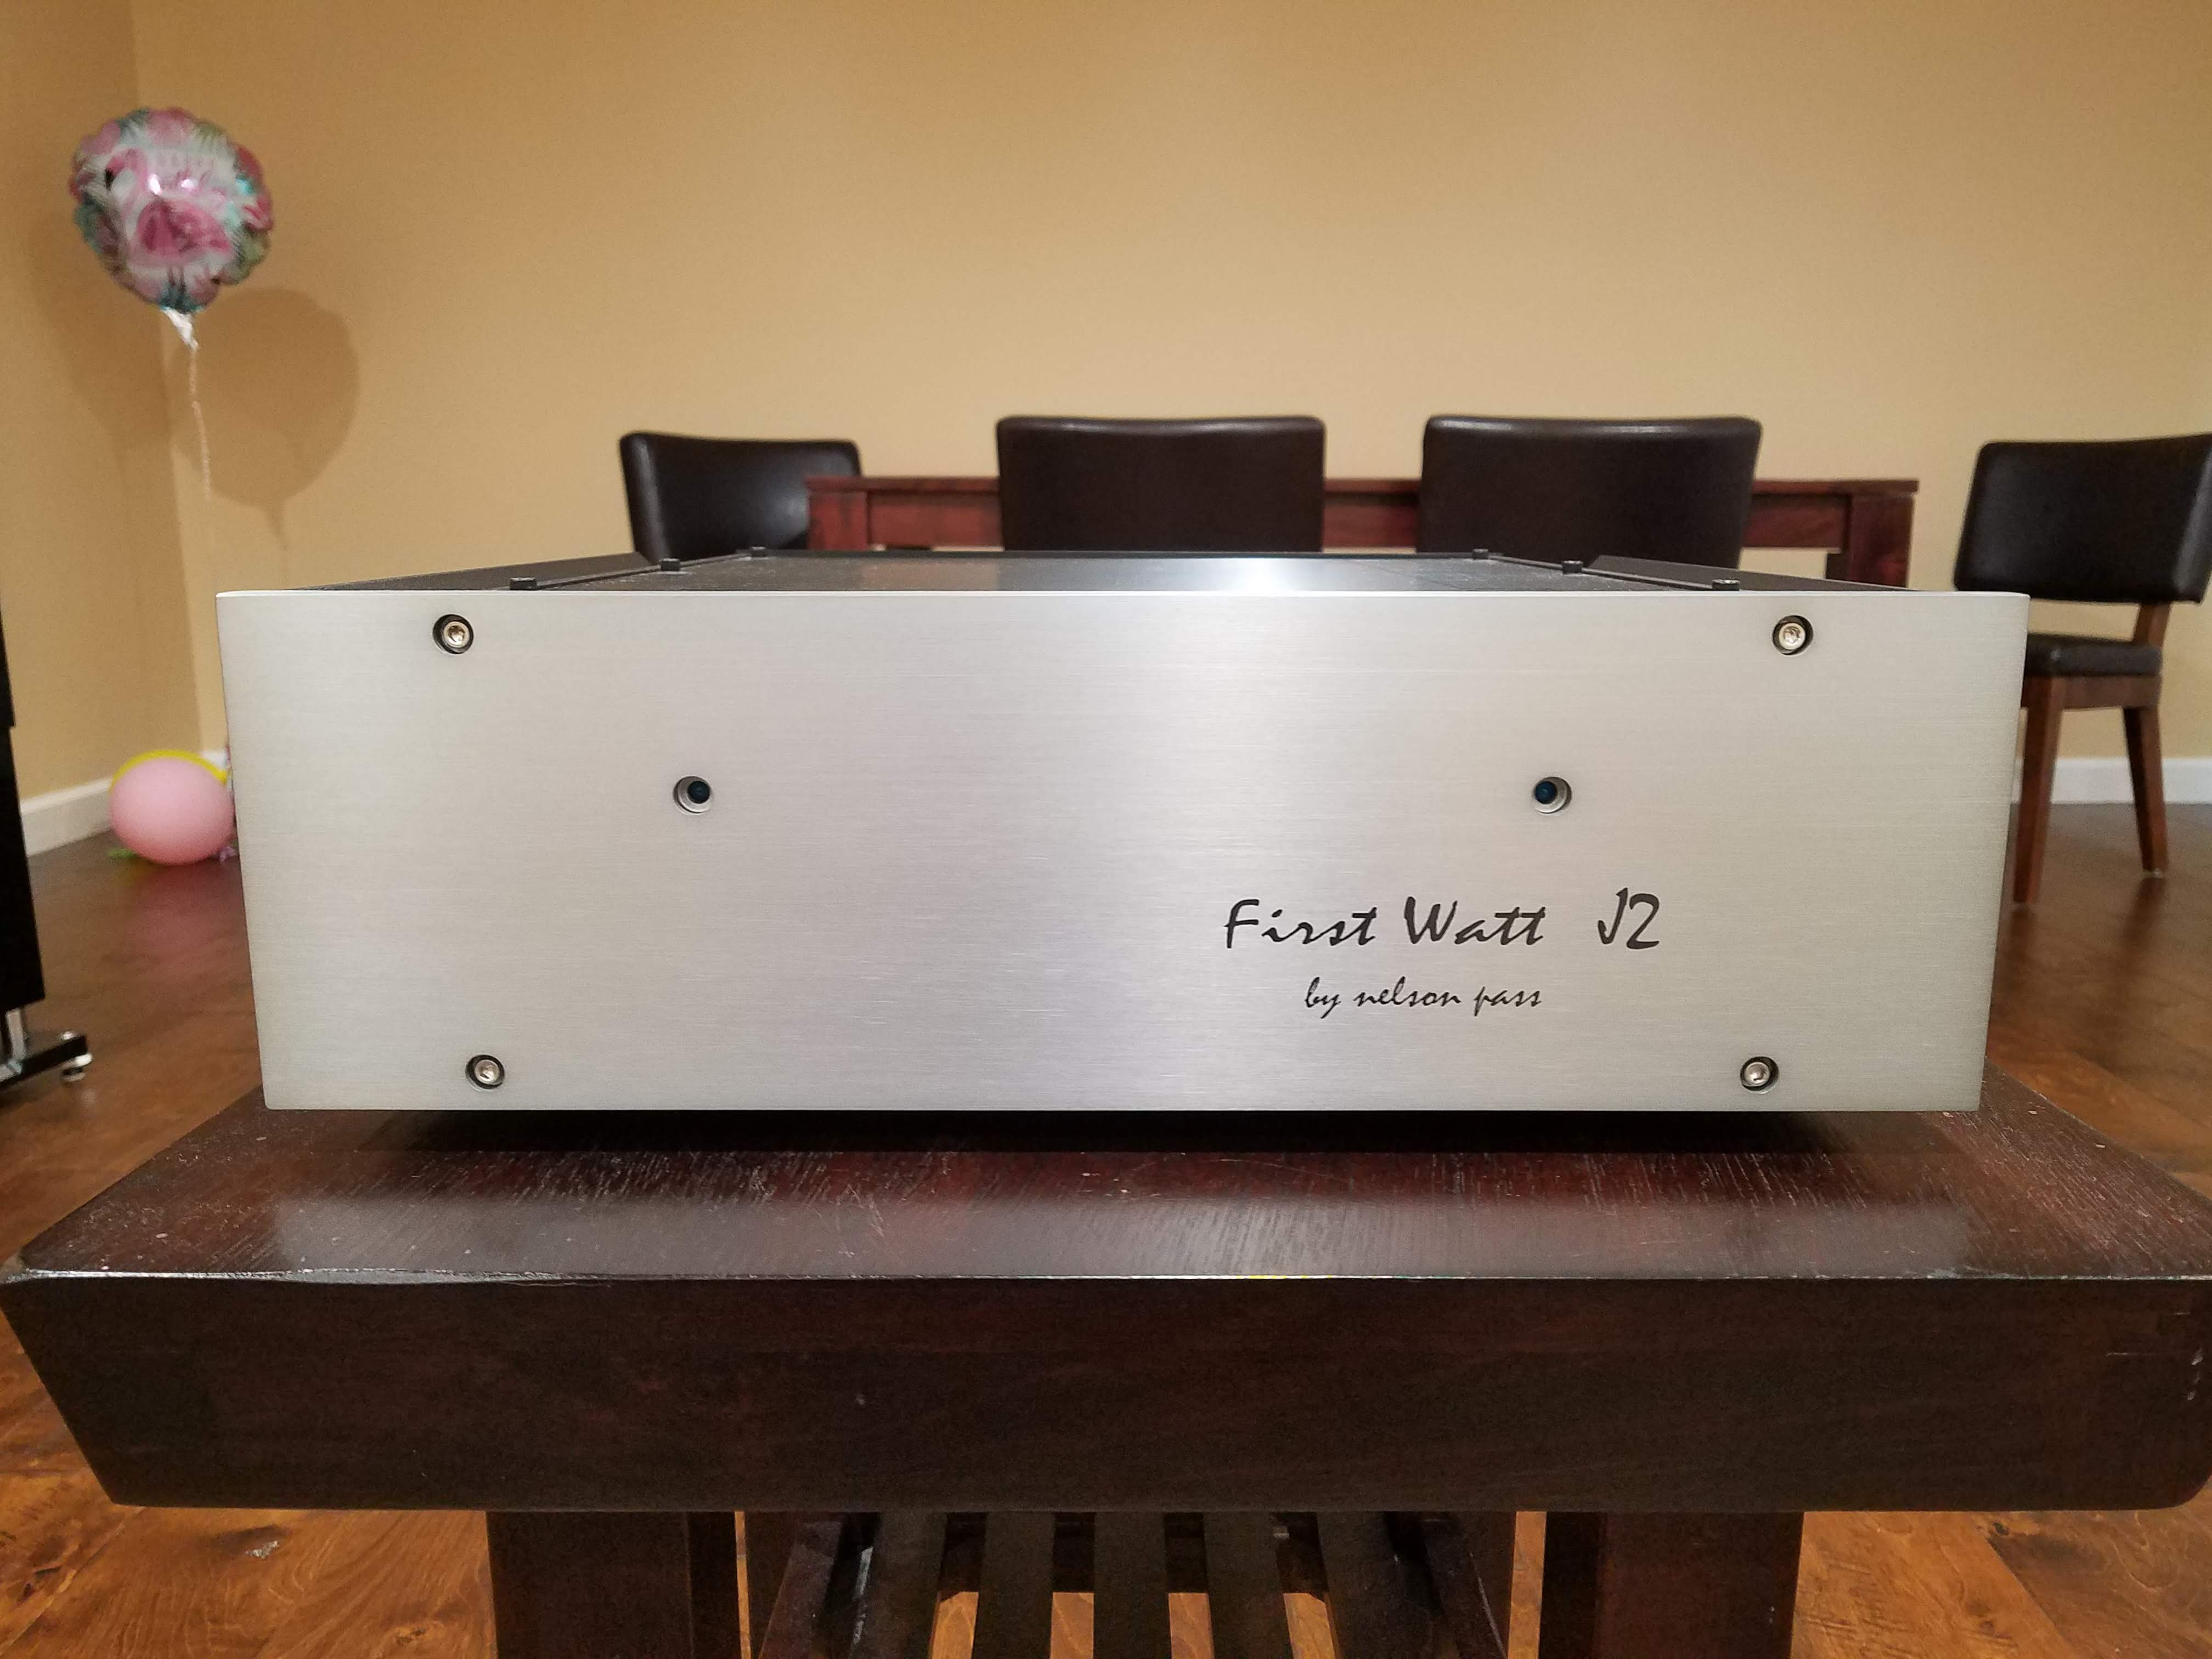 Sold - First Watt J2 amplifier - speakers and headphones